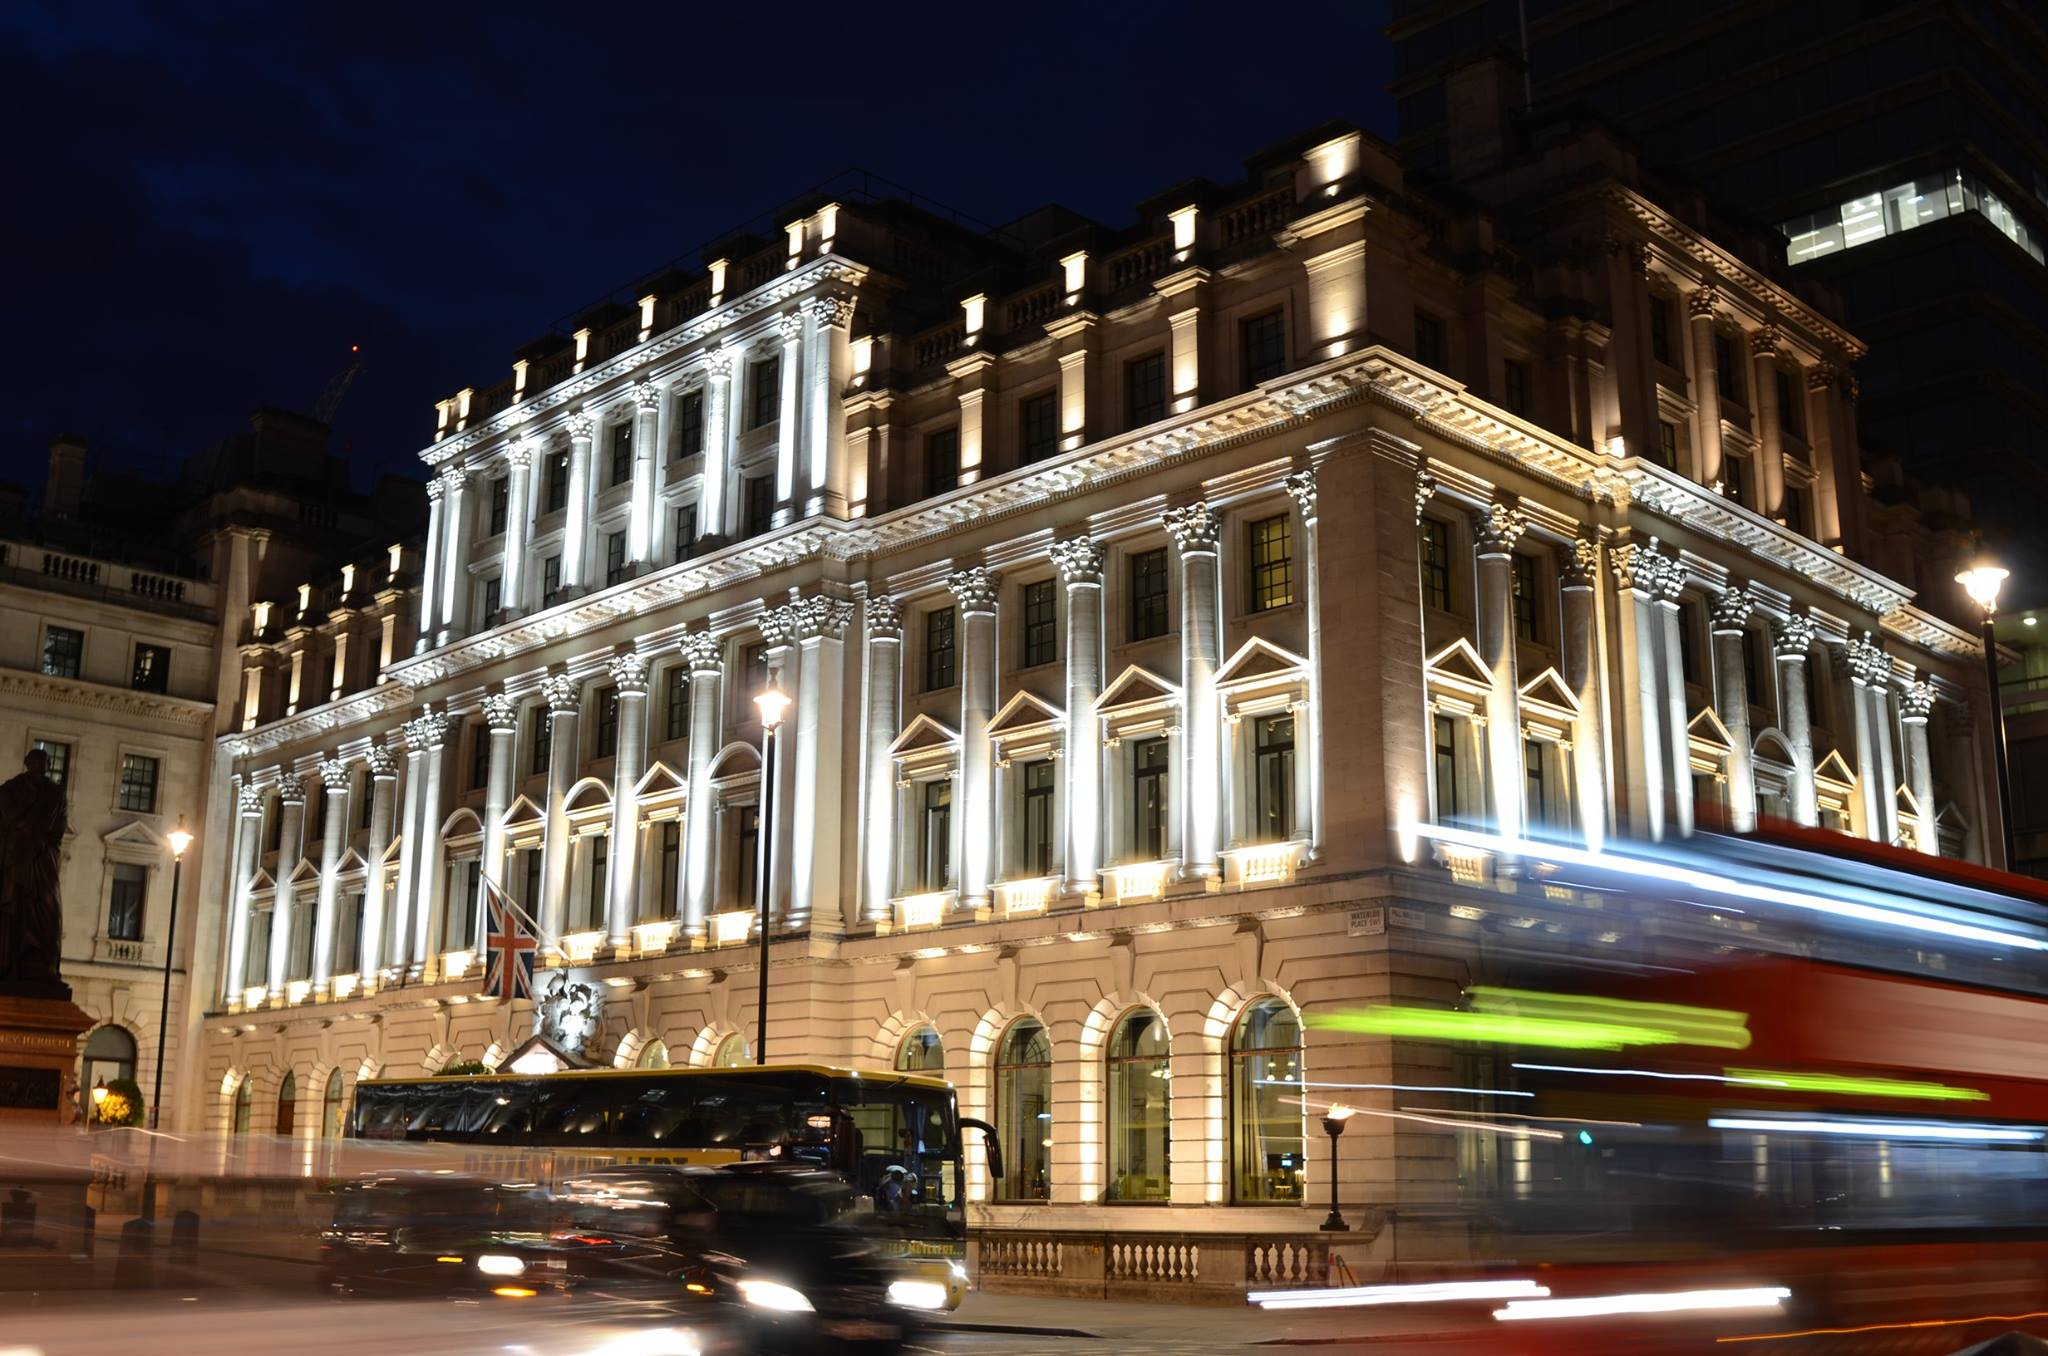 The grand Neo-Classical building is also home to Sofitel St James hotel, which adjoins the Balcon restaurant.